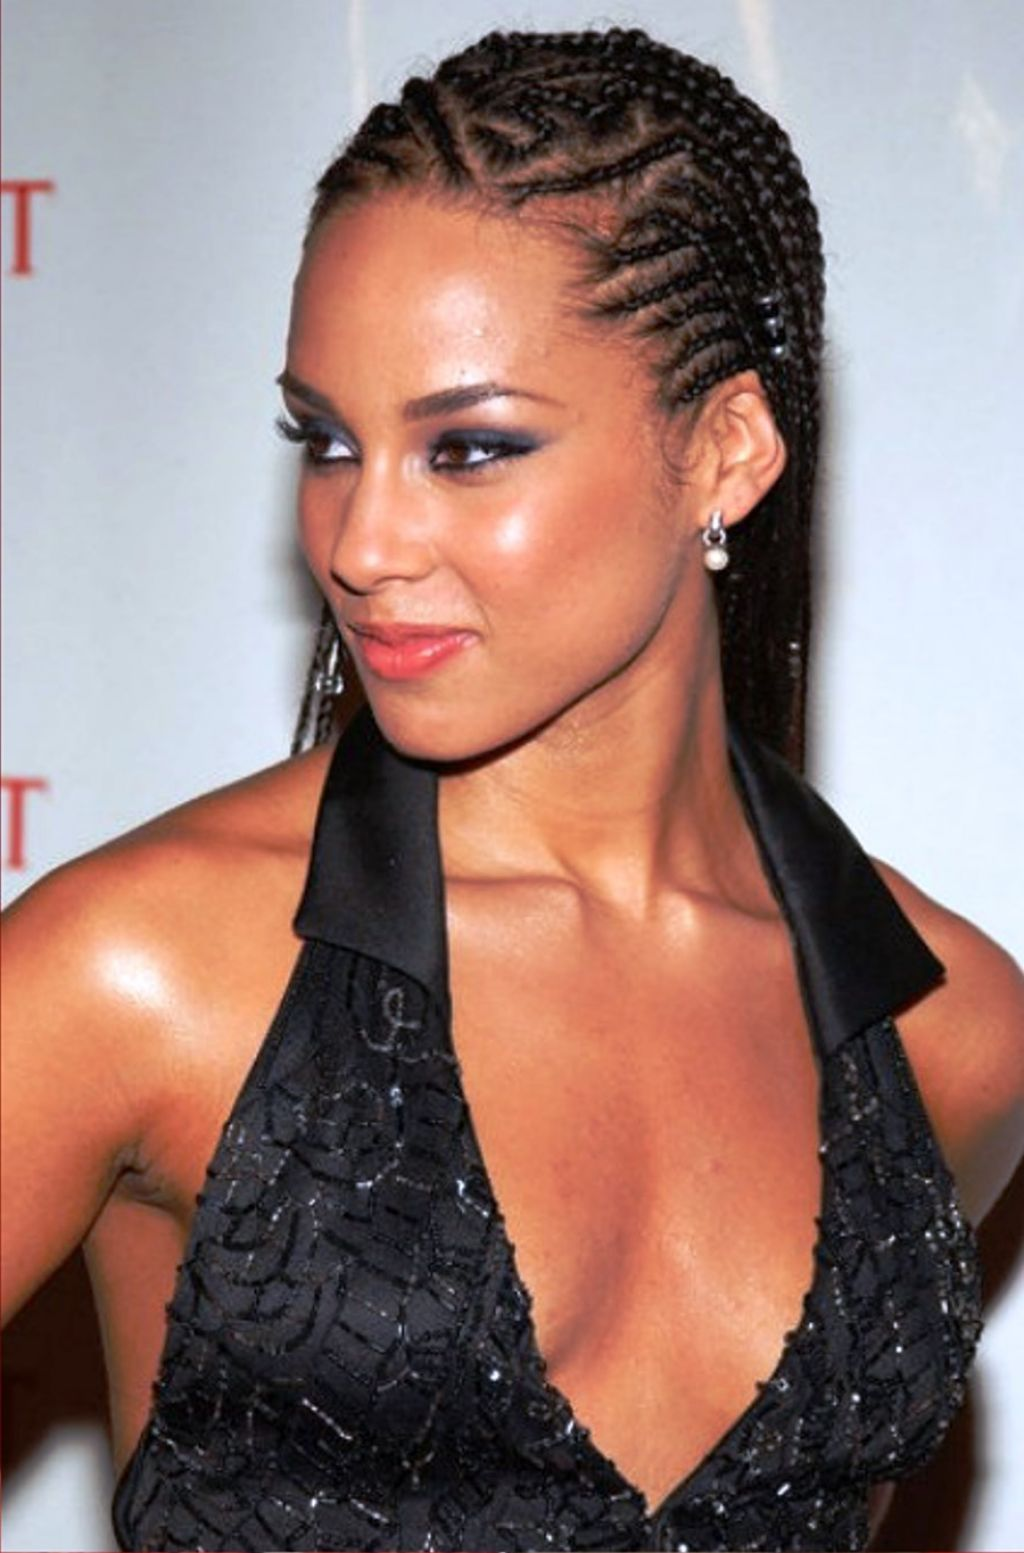 Alicia Keys Cornrow Braid Hairstyle Cornrow Hairstyles Hair Styles Natural Hair Styles